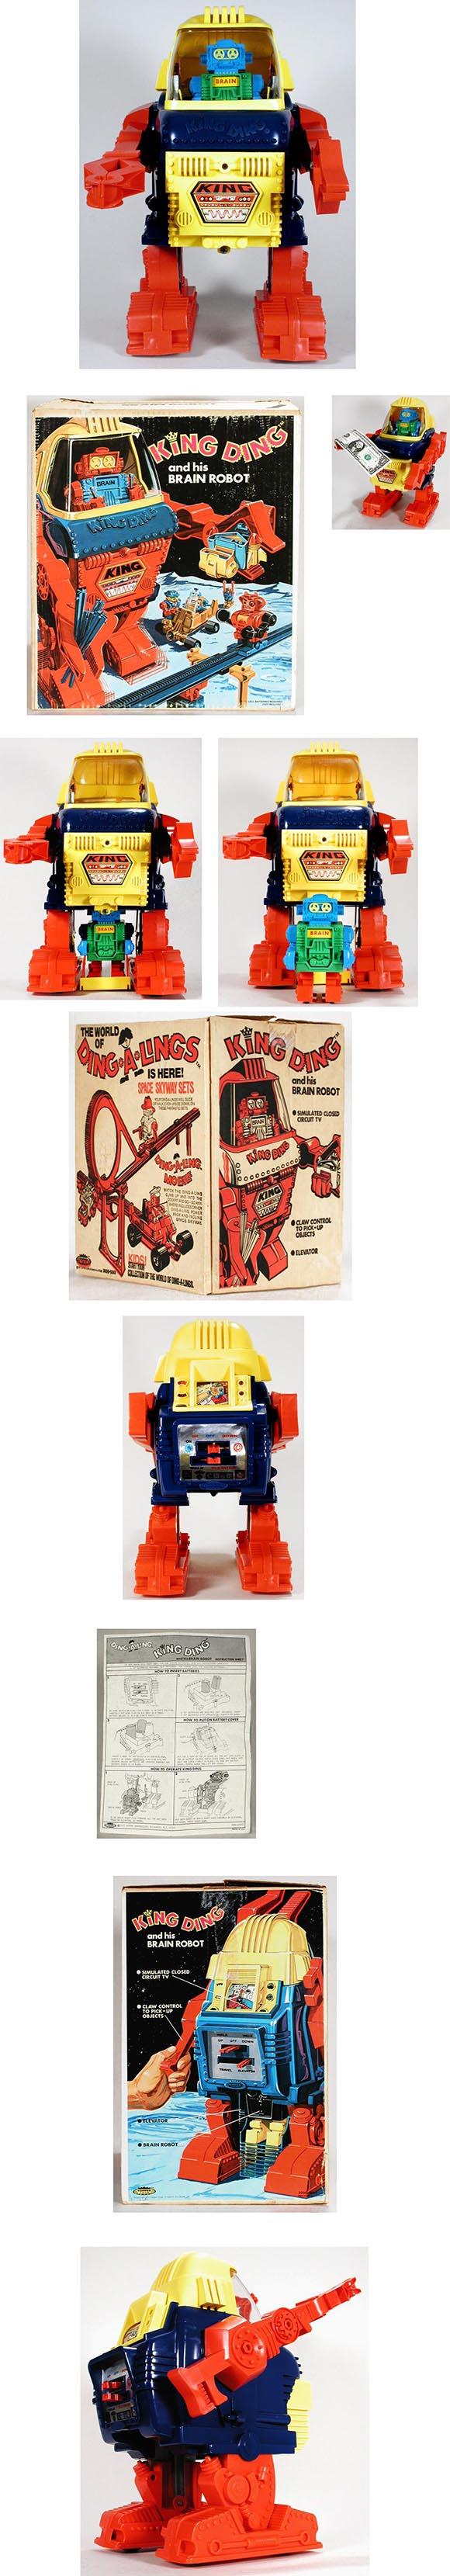 1971 Topper Toys, King Ding and His Brain Robot in Original Box